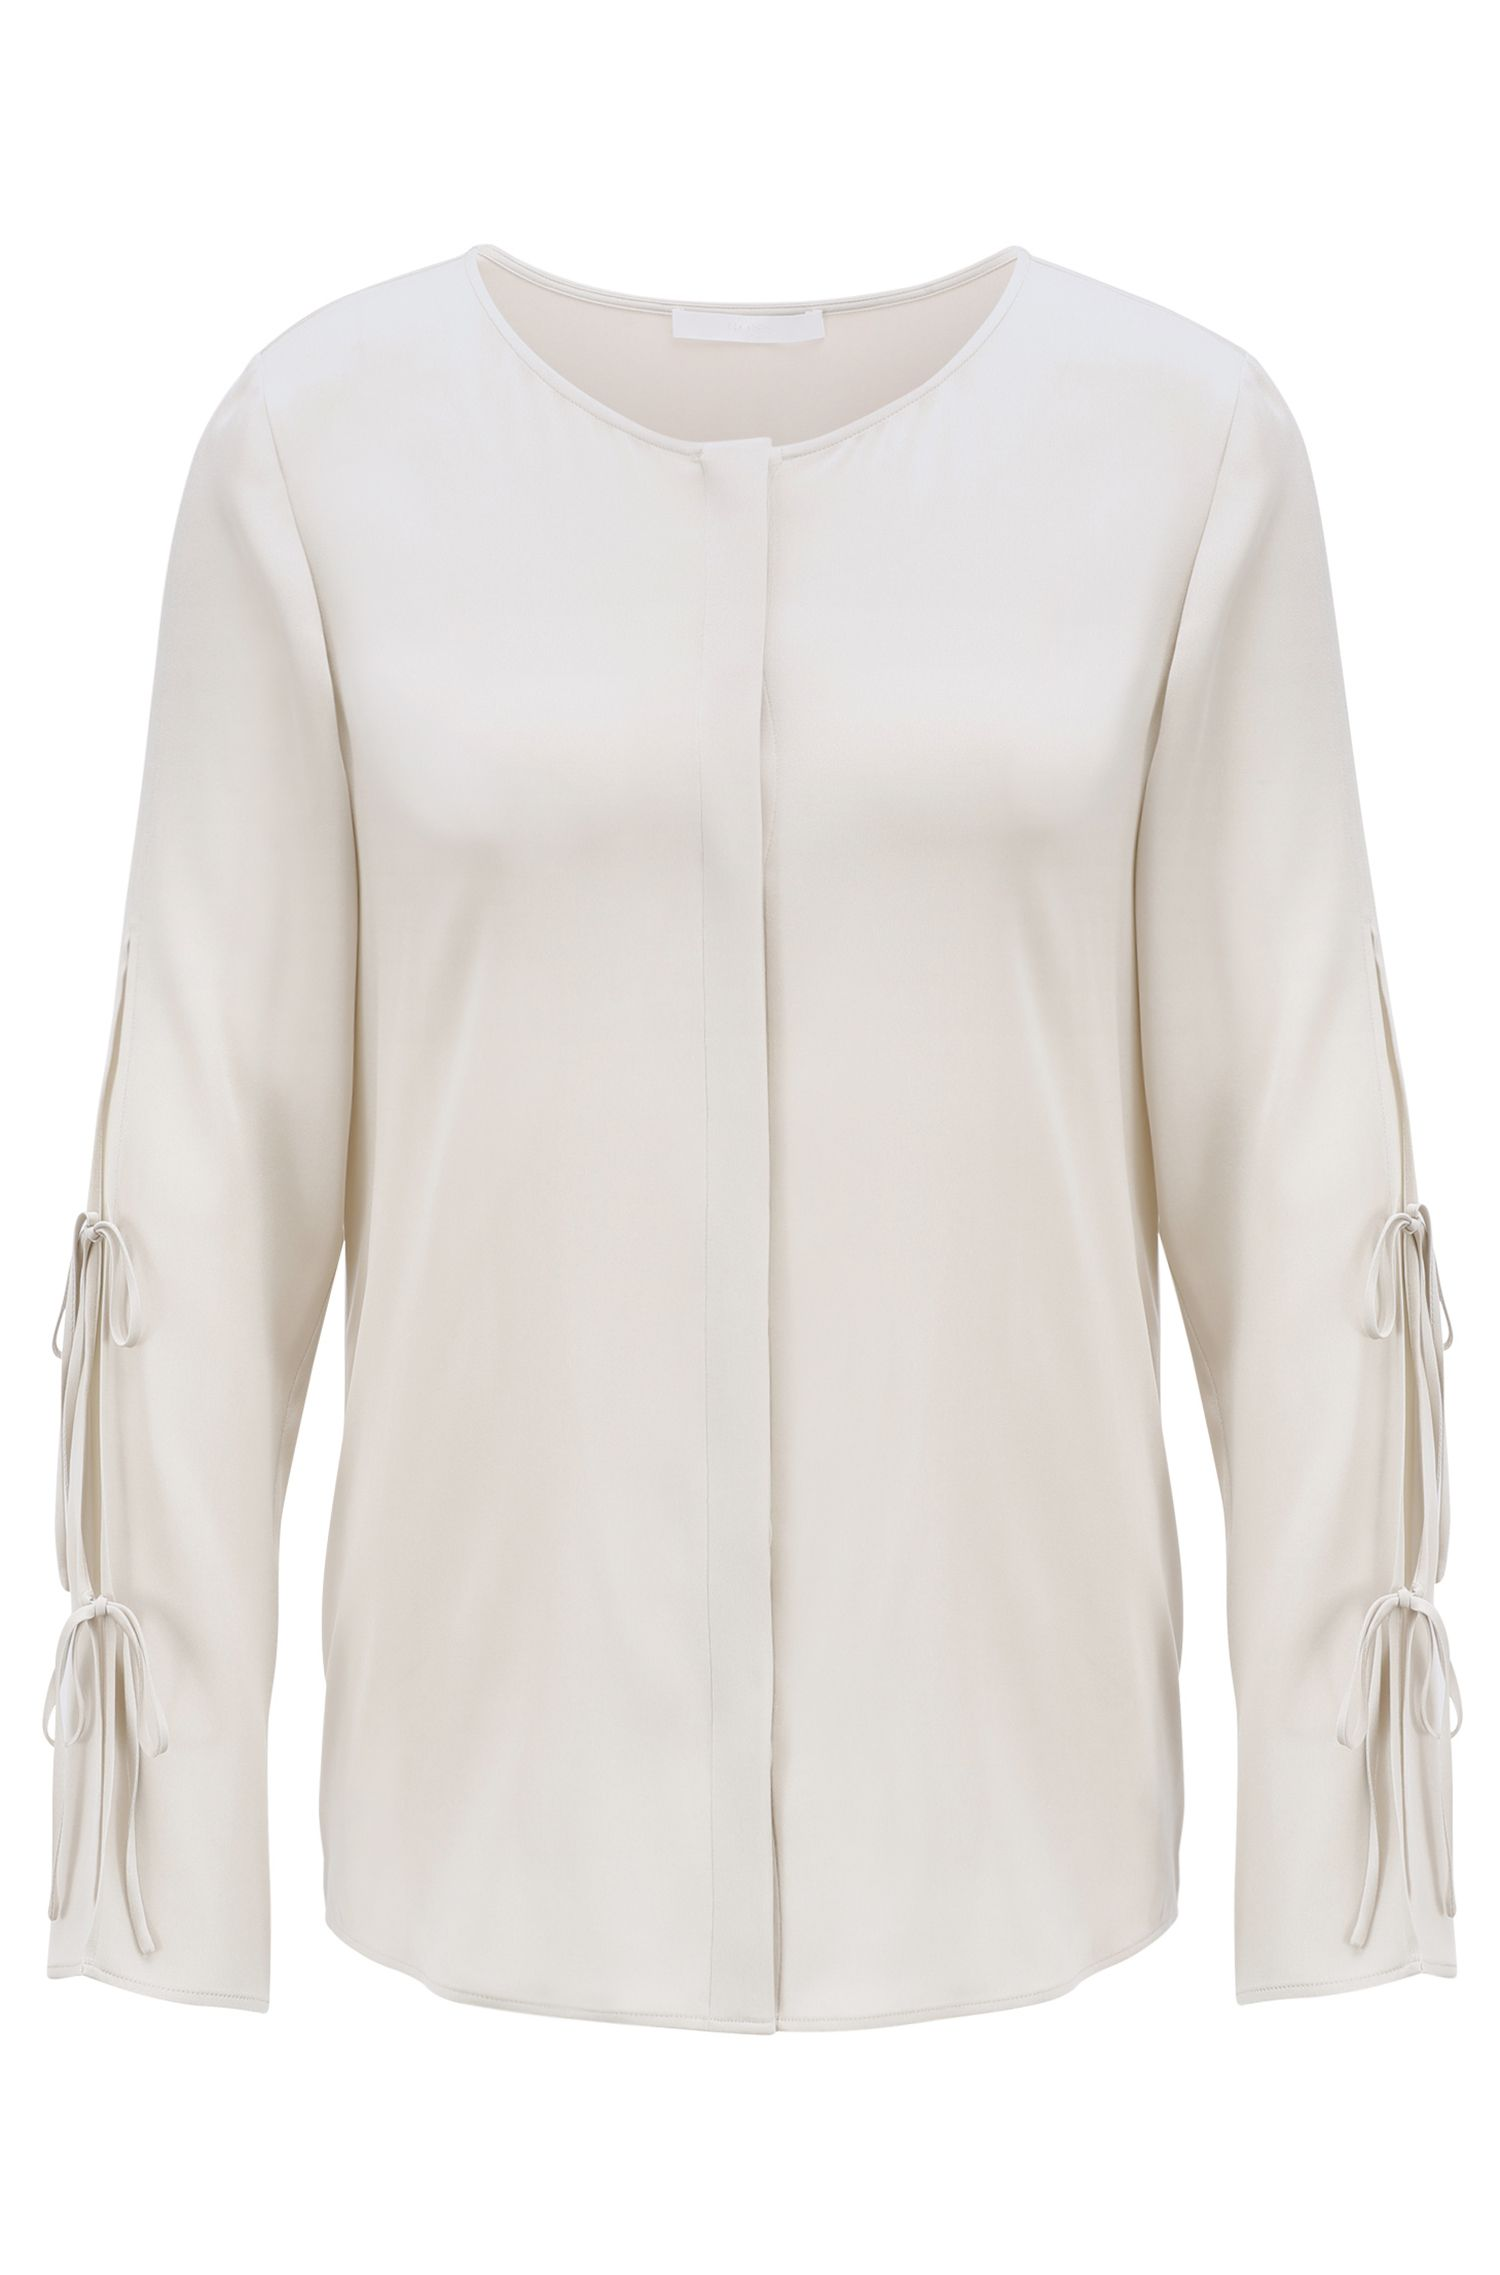 Bow-detail blouse in stretch crepe de chine